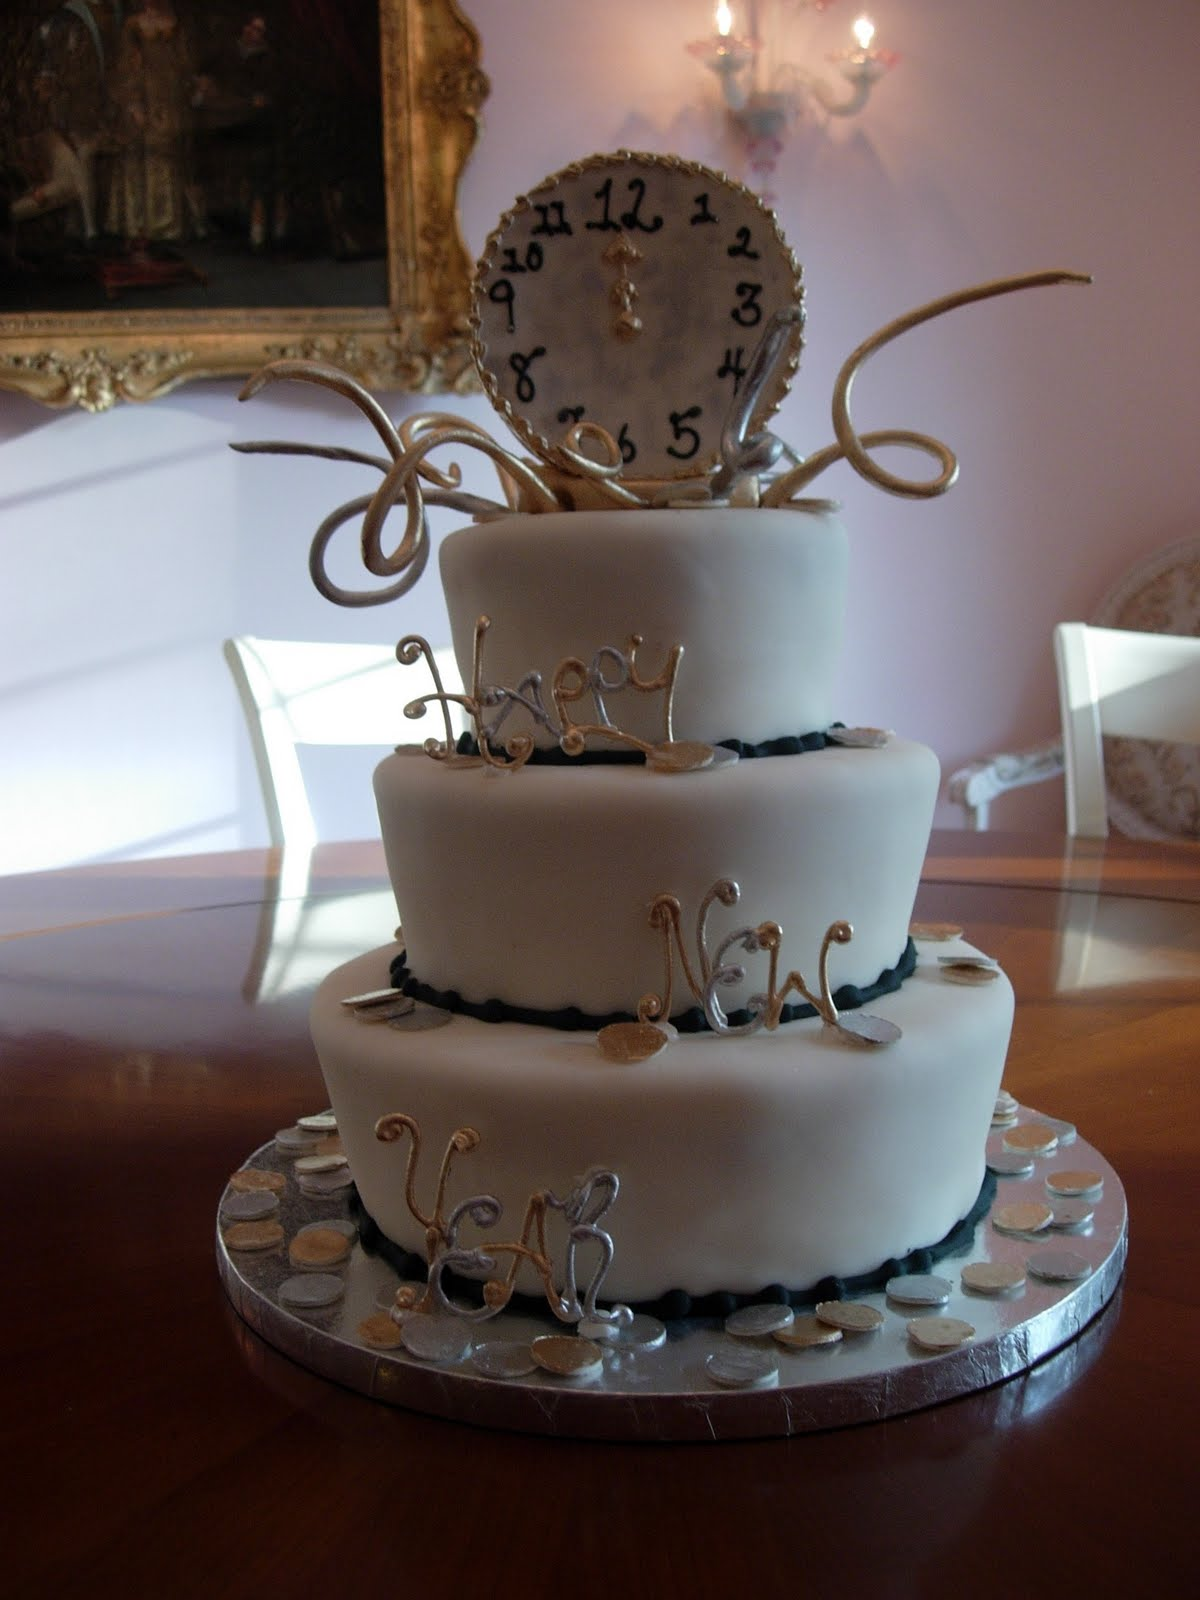 ~~~EYE CANDY~~ New Year's Eve CUP/CAKE(s)~~~ - Inspiration ...